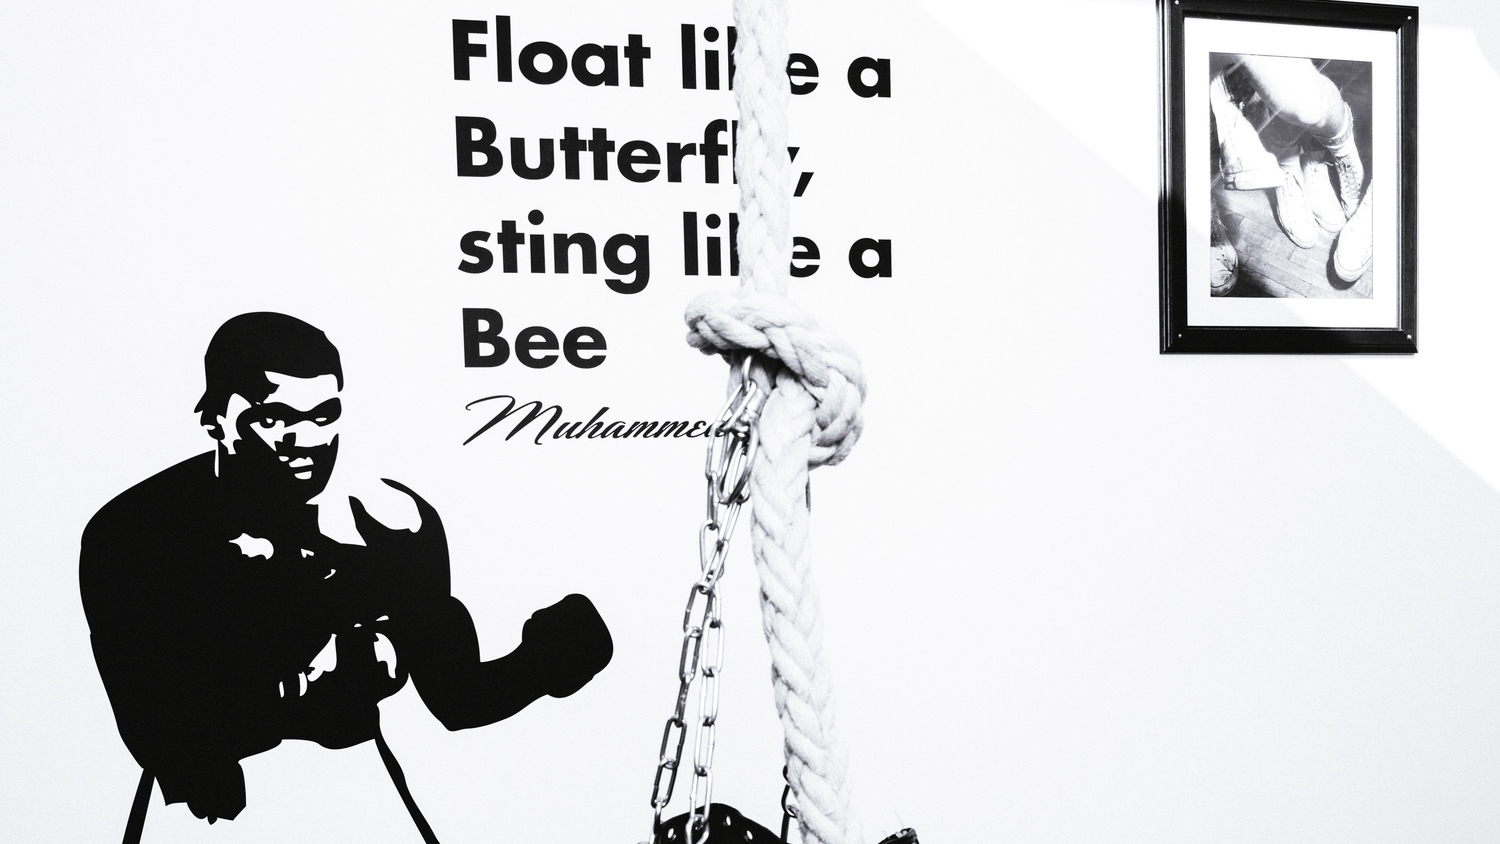 Quote from Mohammed Ali